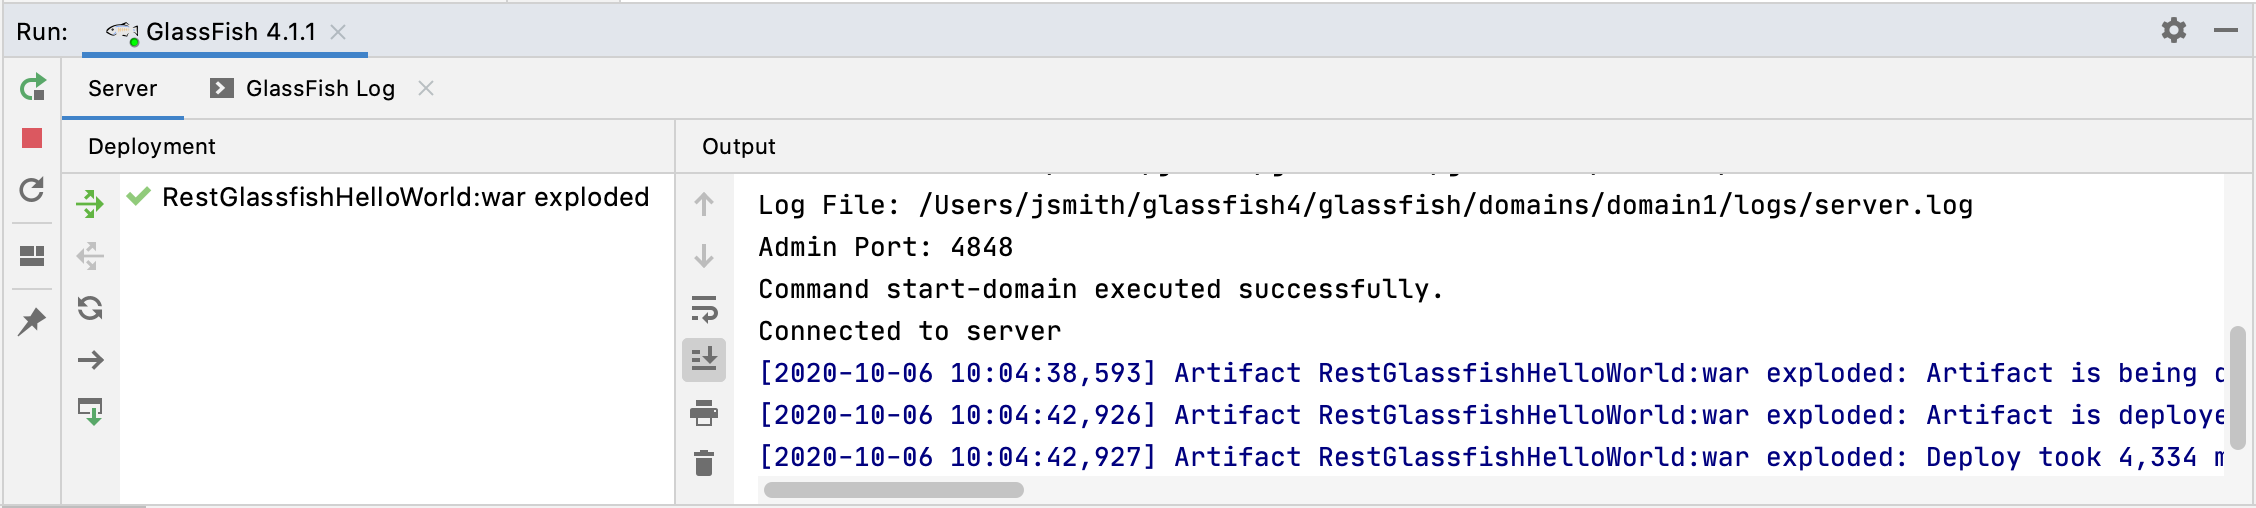 Started GlassFish server and deployed application in the Run tool window